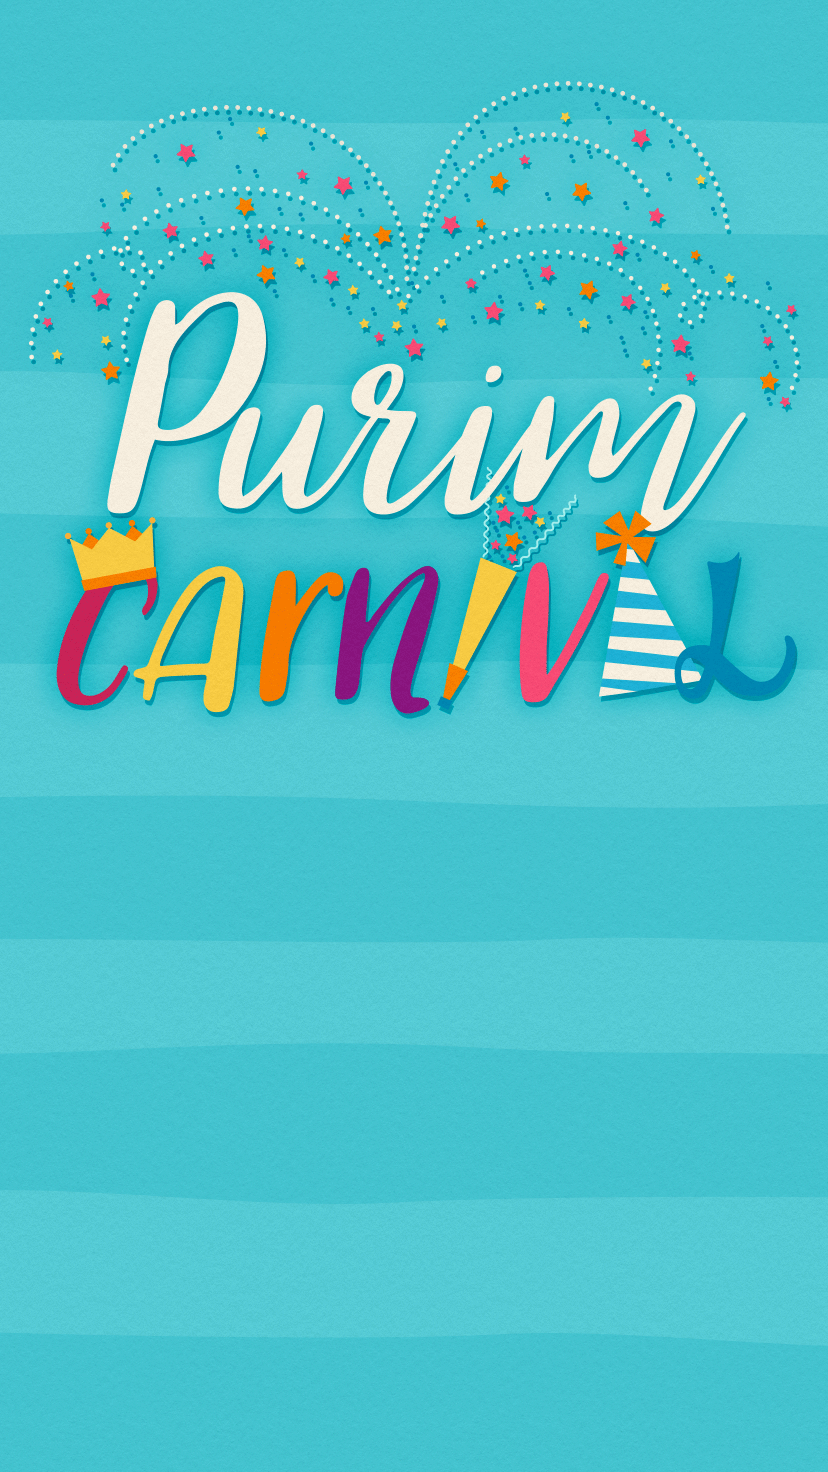 Celebrate Purim With This Free Paperless Evite Invitation